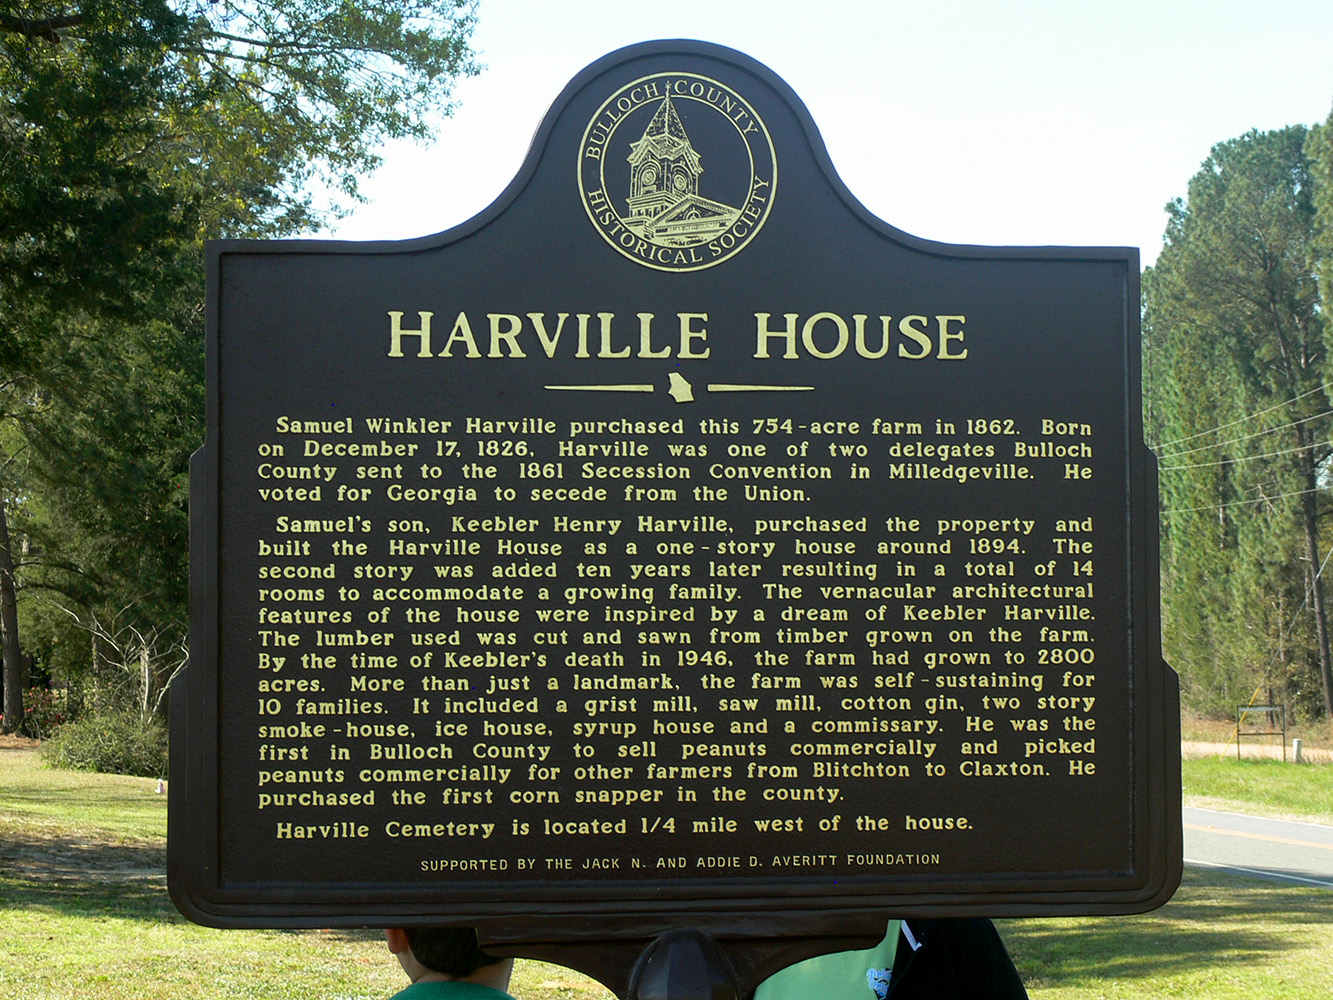 Harville House